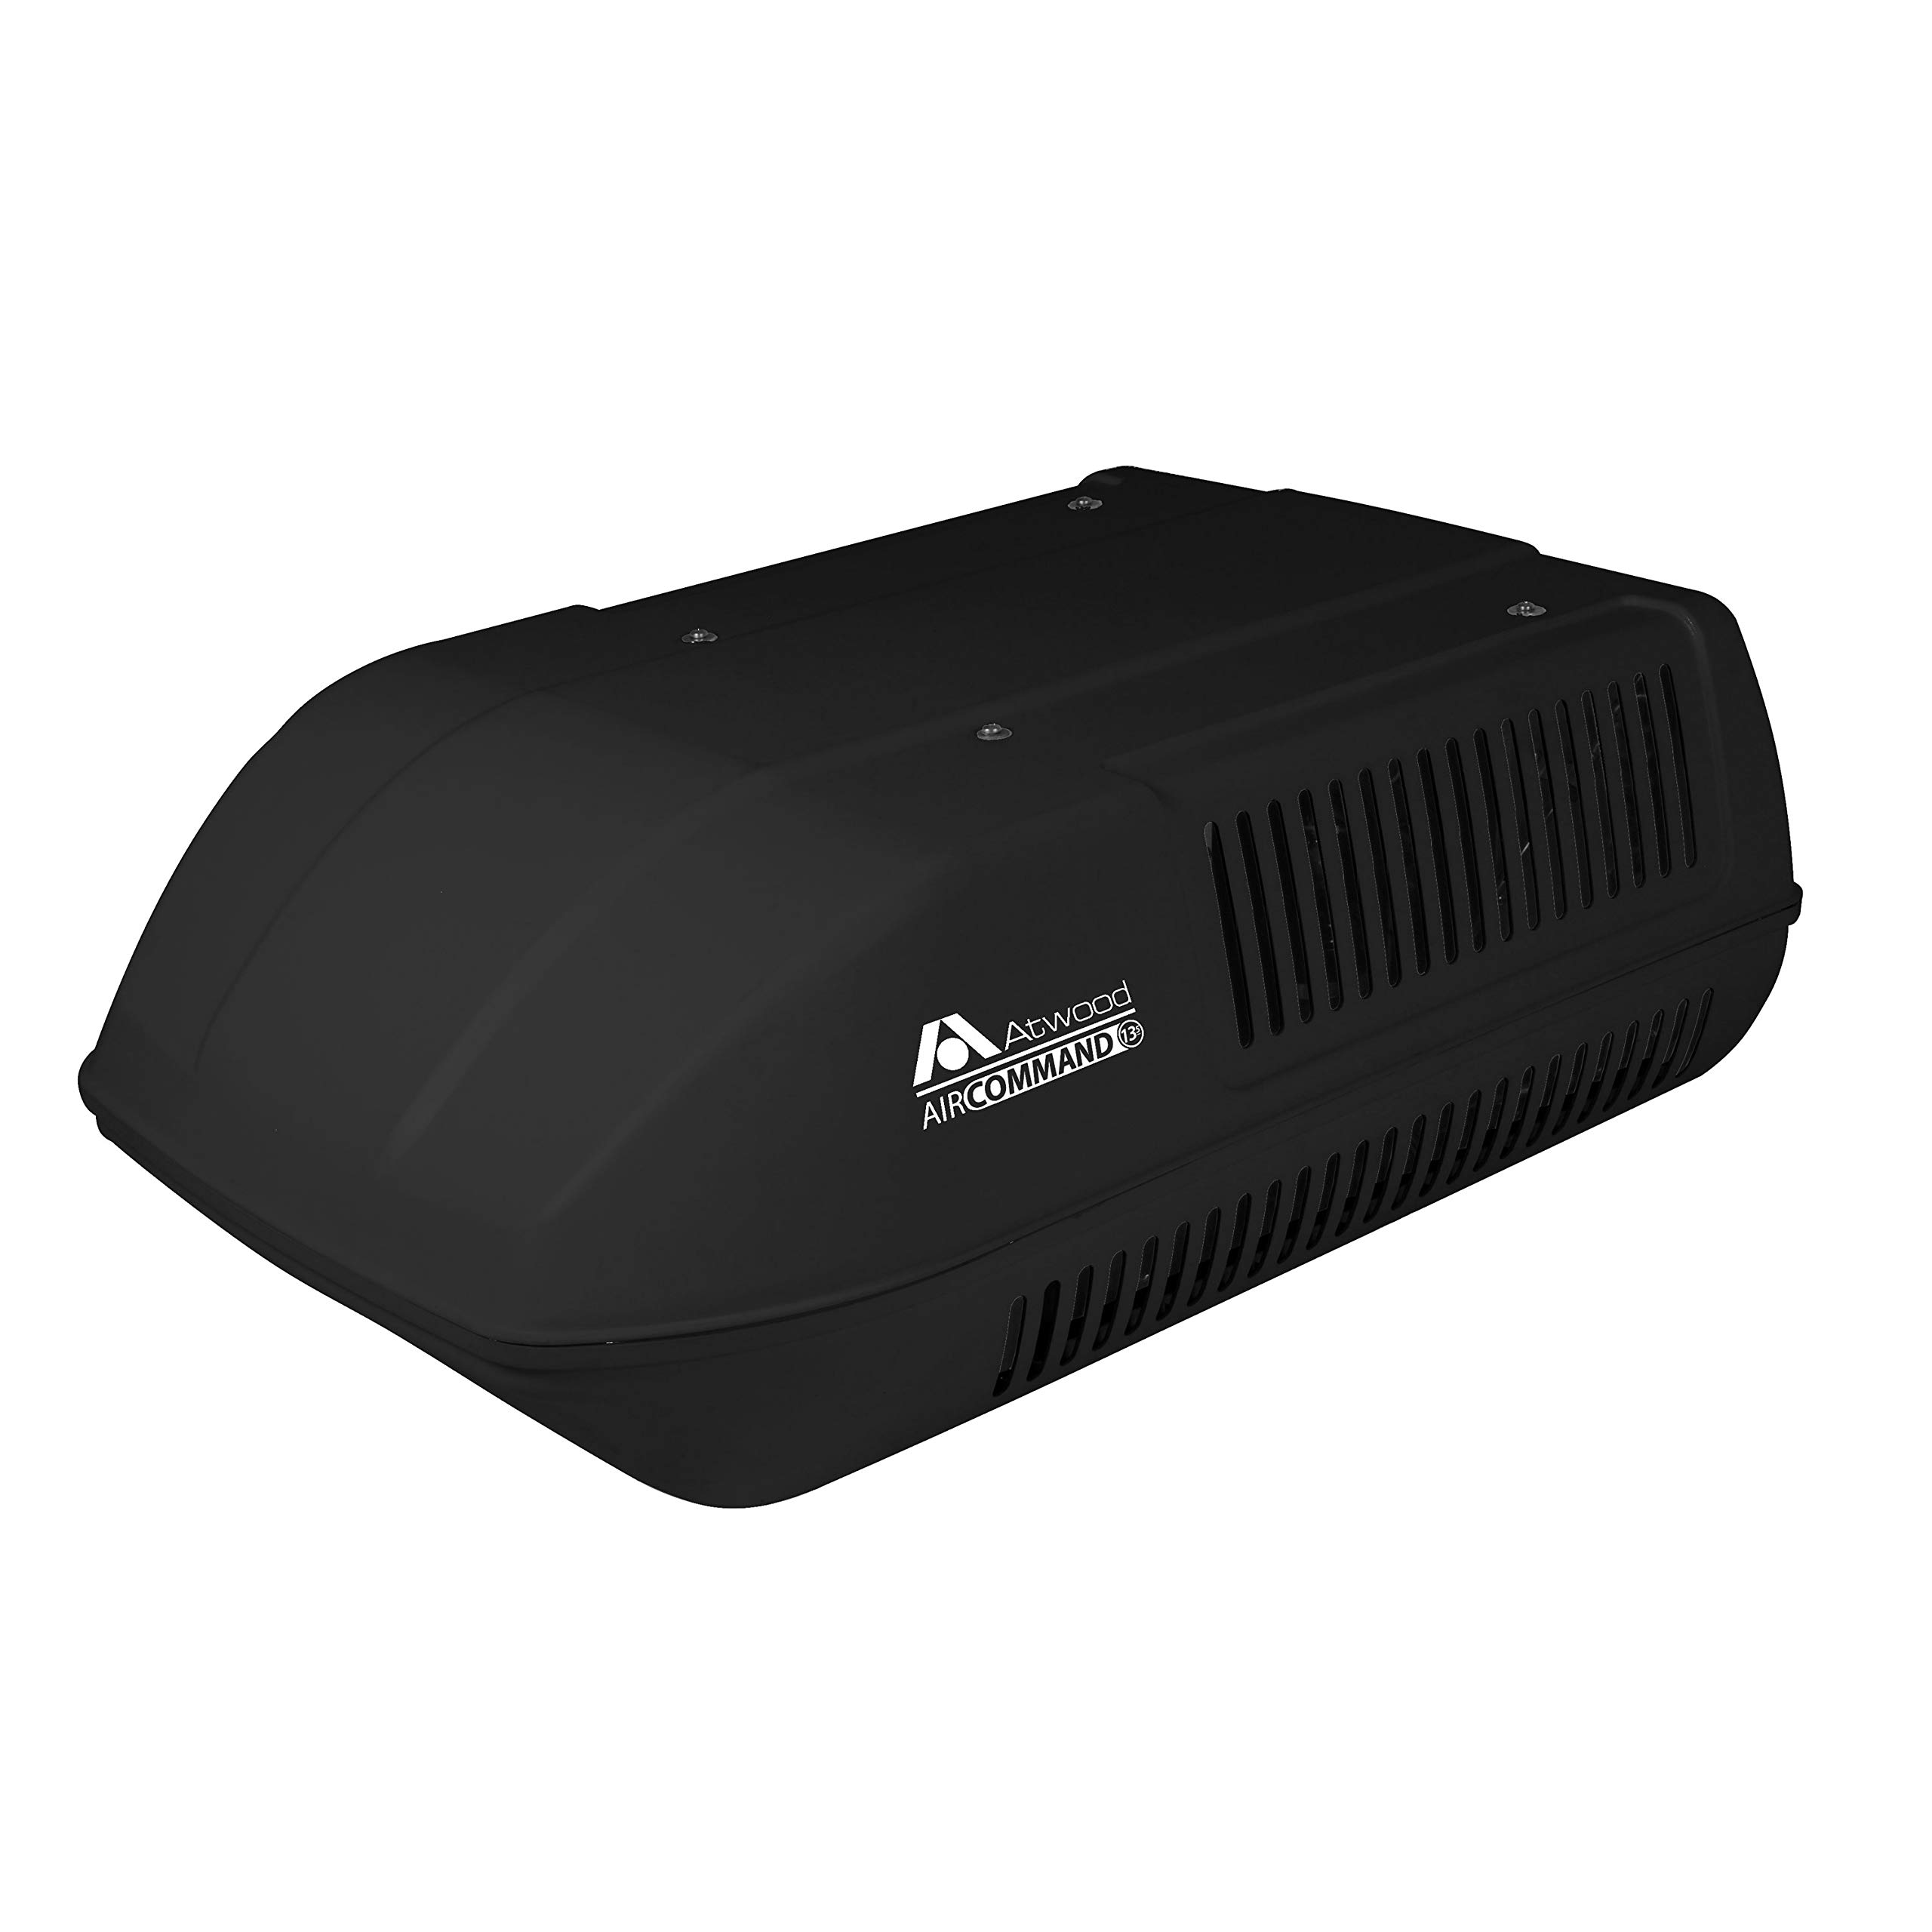 Atwood Mobile Products 15031 Ac 15K Btu Non-Ducted Black